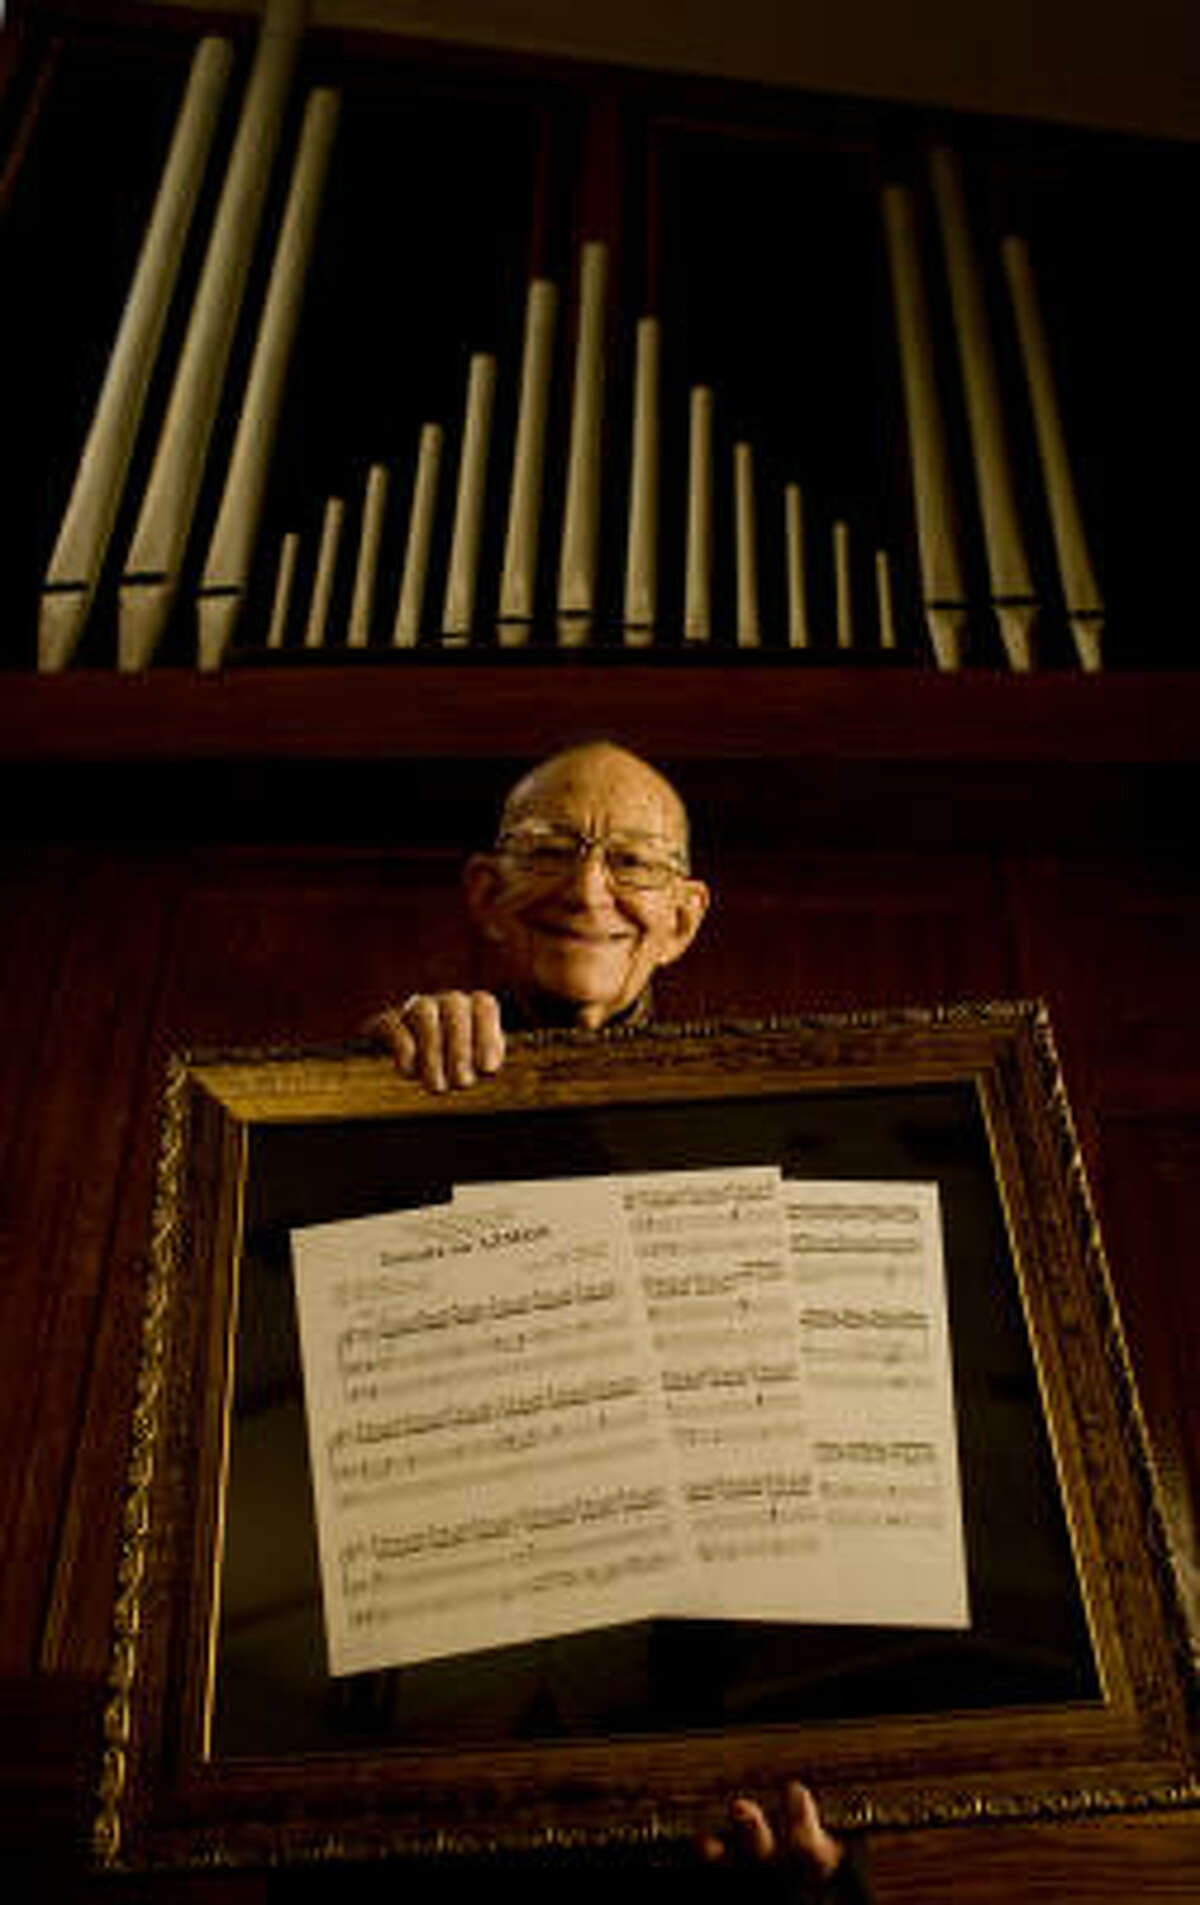 M.W. Ford, 91, with the sheet music for Toccata on Azmon, arranged by Jerry Westenkuehler in honor of Ford's 70 years as organist at First United Methodist Church in Dayton.